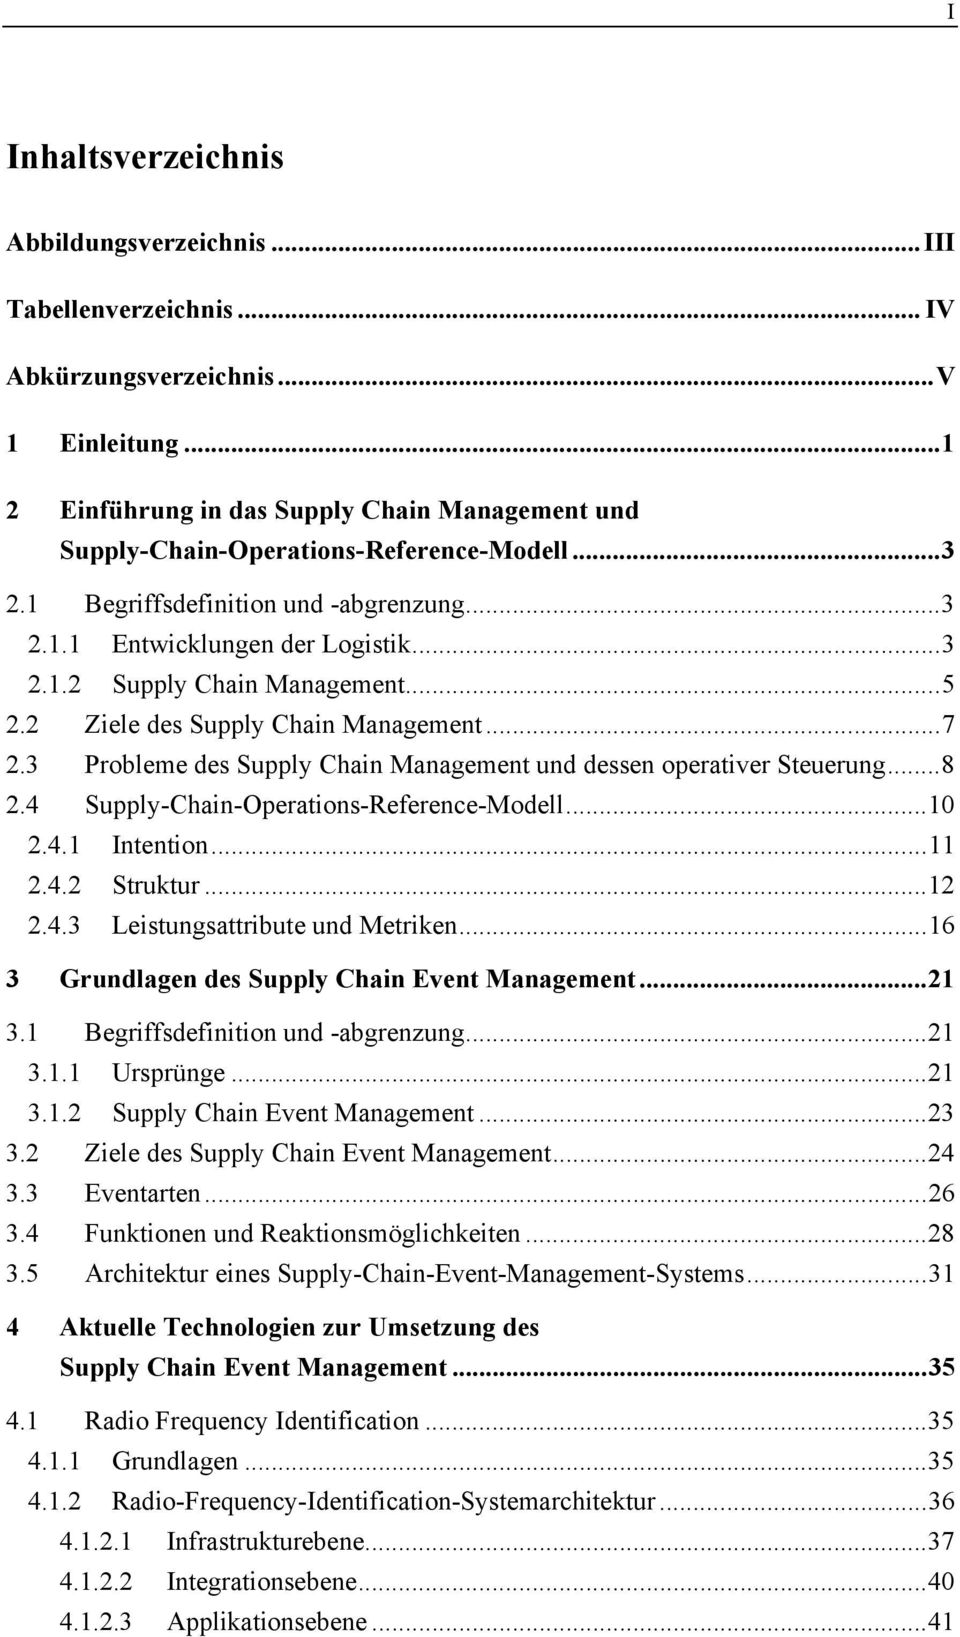 ..5 2.2 Ziele des Supply Chain Management...7 2.3 Probleme des Supply Chain Management und dessen operativer Steuerung...8 2.4 Supply-Chain-Operations-Reference-Modell...10 2.4.1 Intention...11 2.4.2 Struktur.